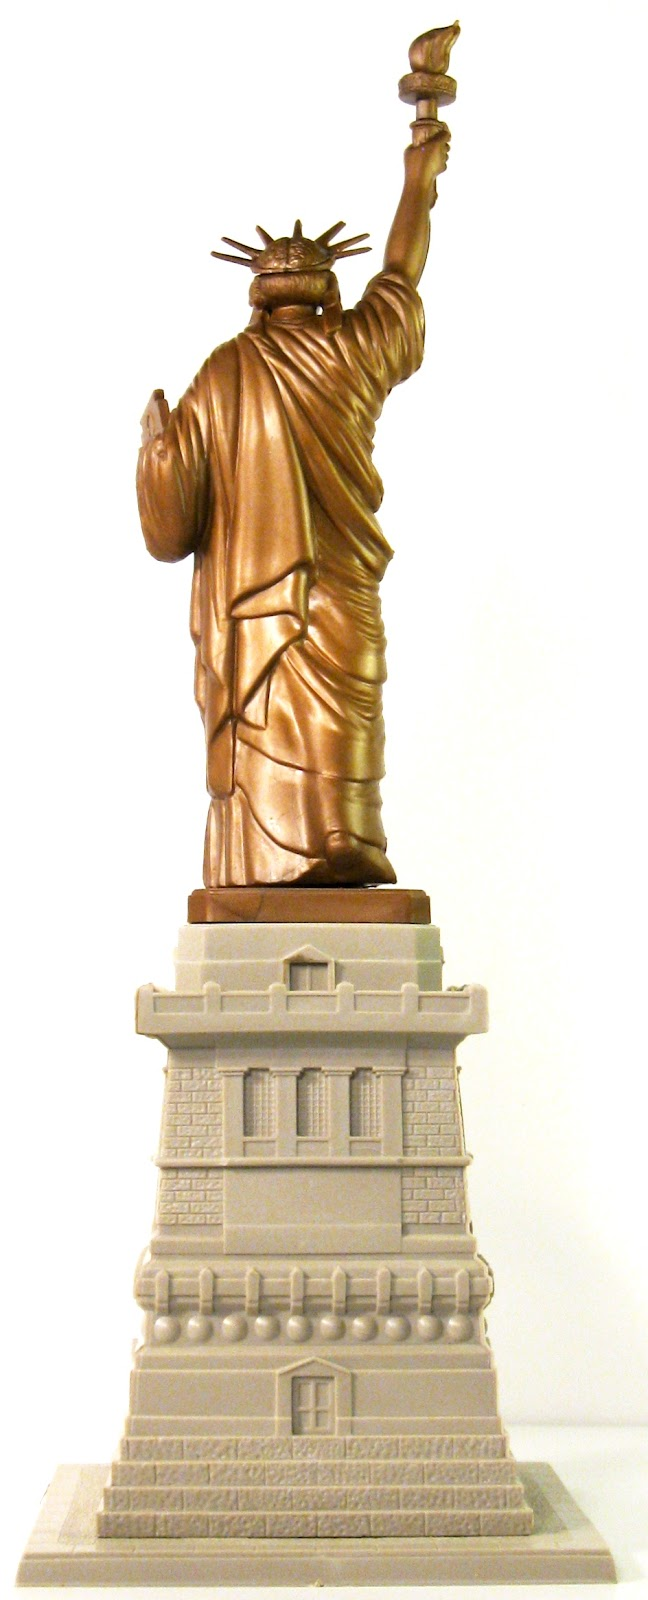 Toys and Stuff: K-Line Statue of Liberty